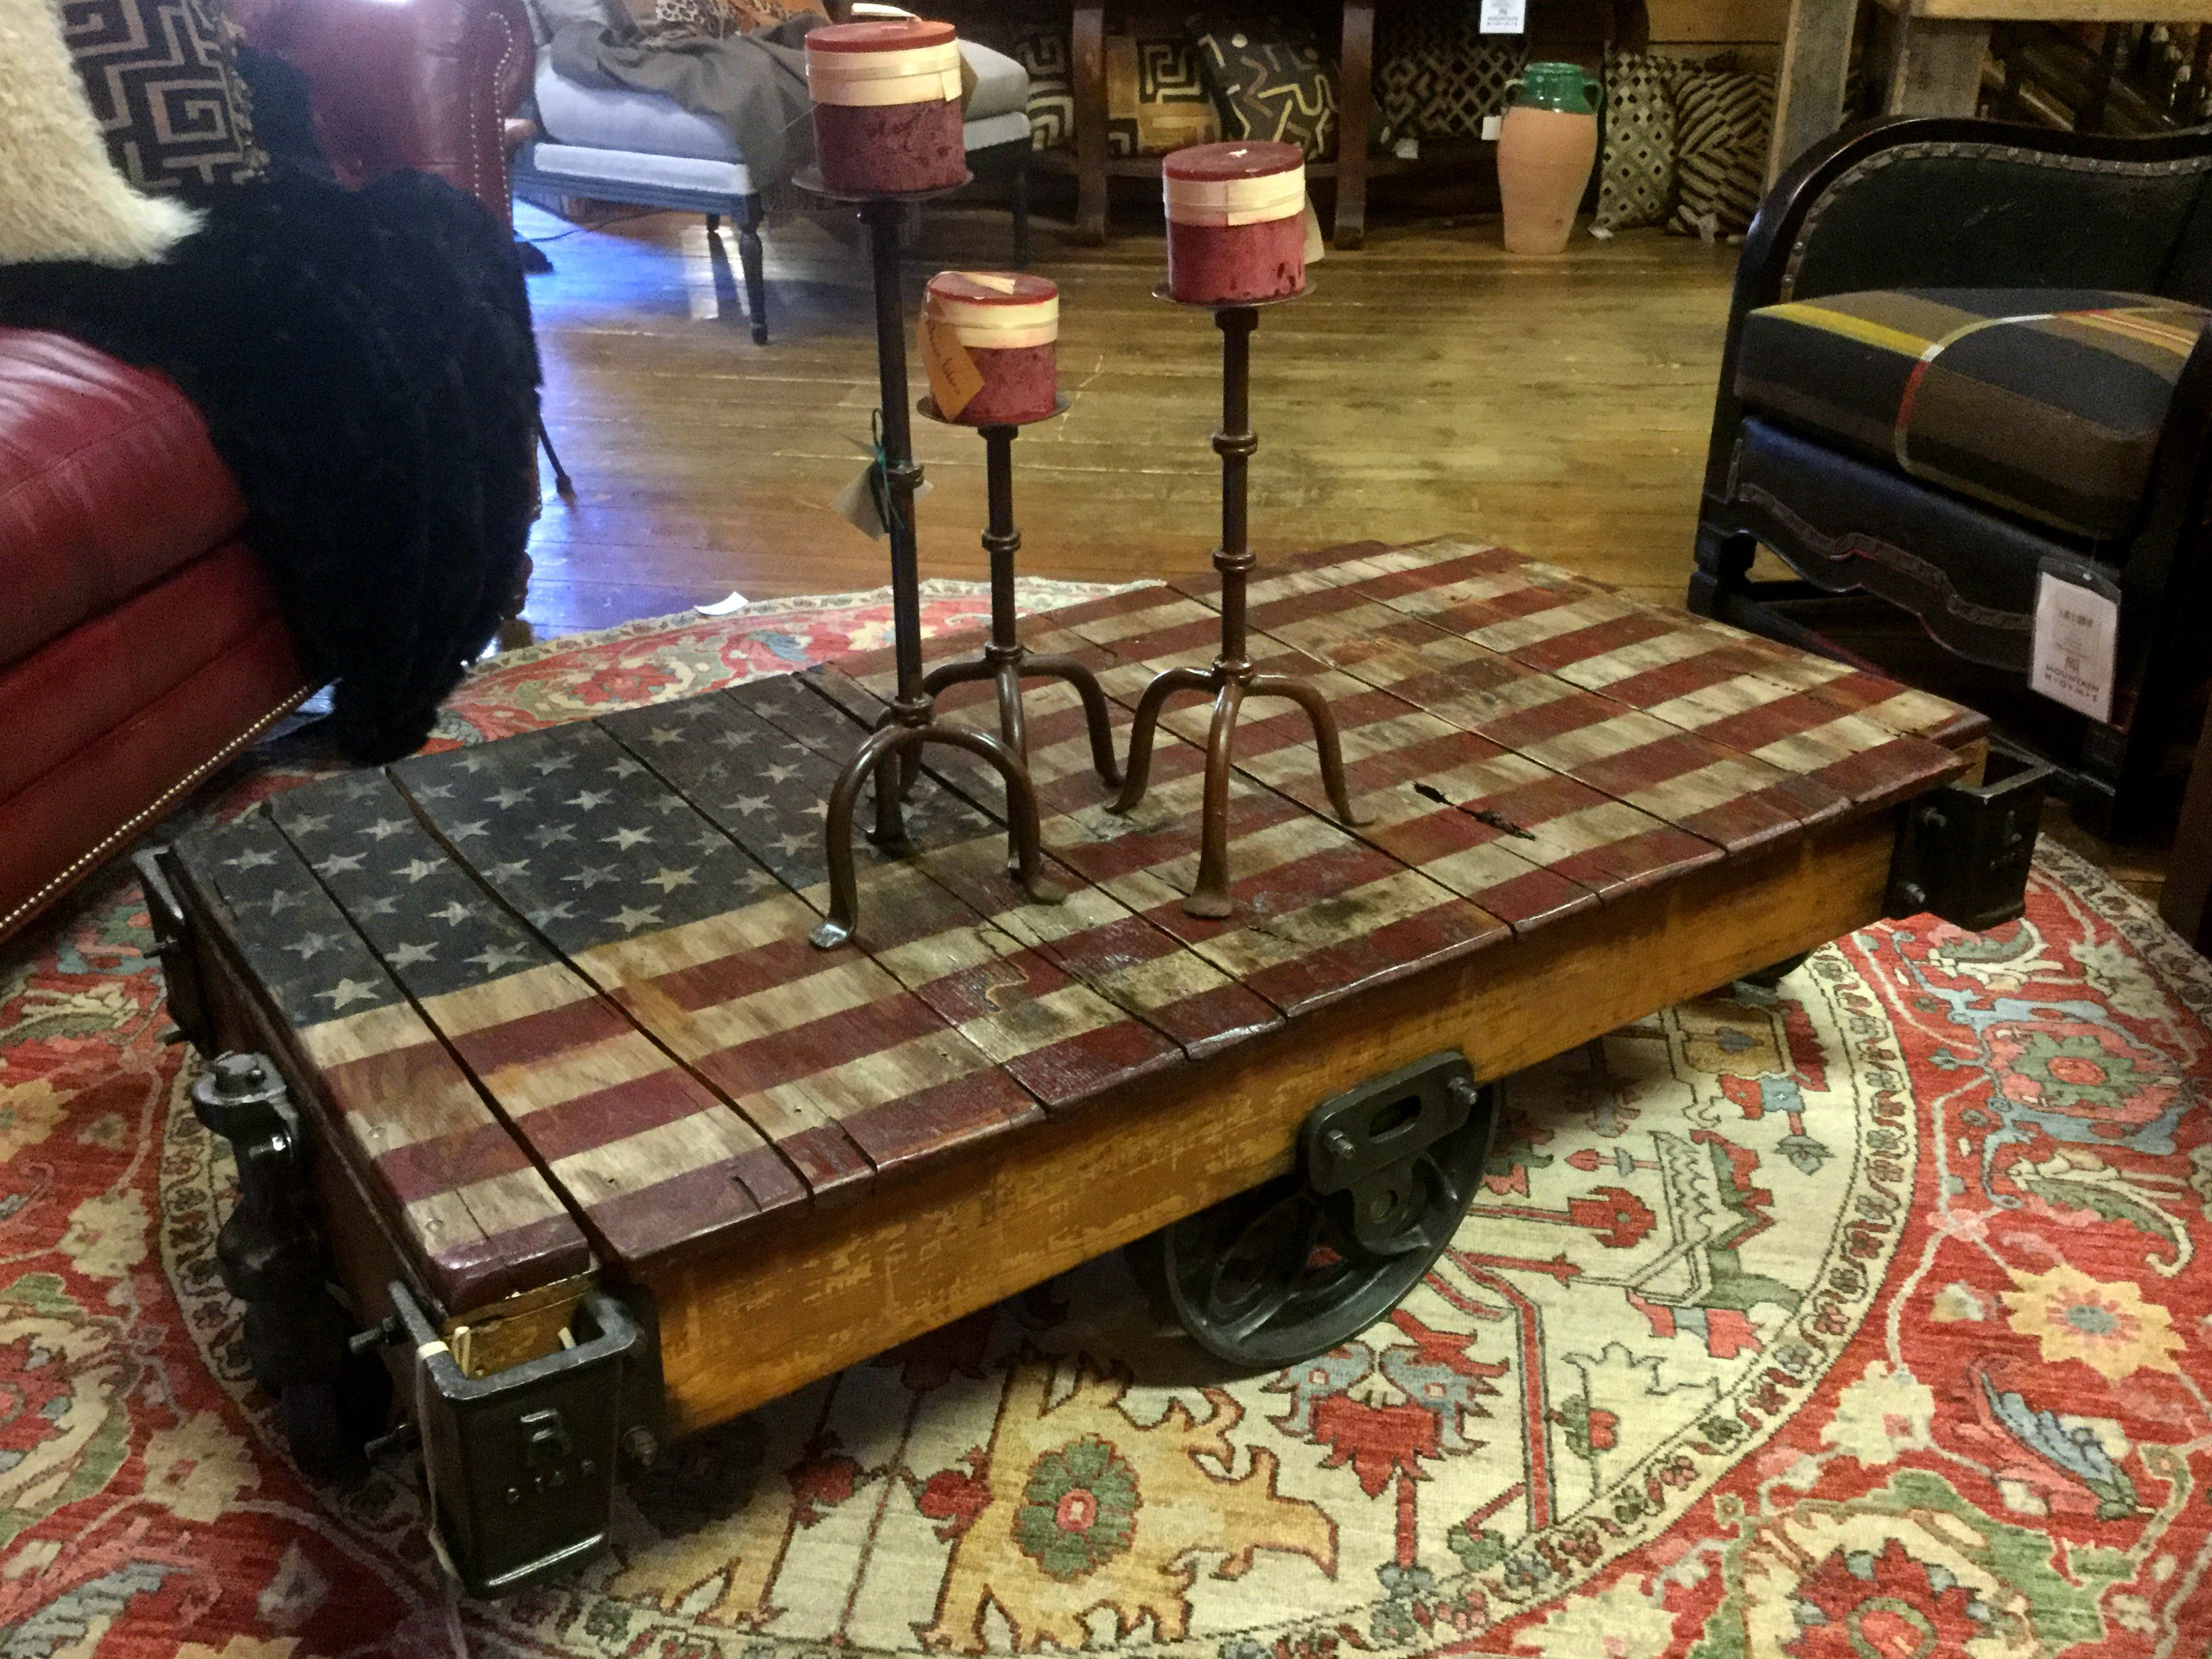 Show Your Patriotism With This Flag Themed Coffee Table Made From